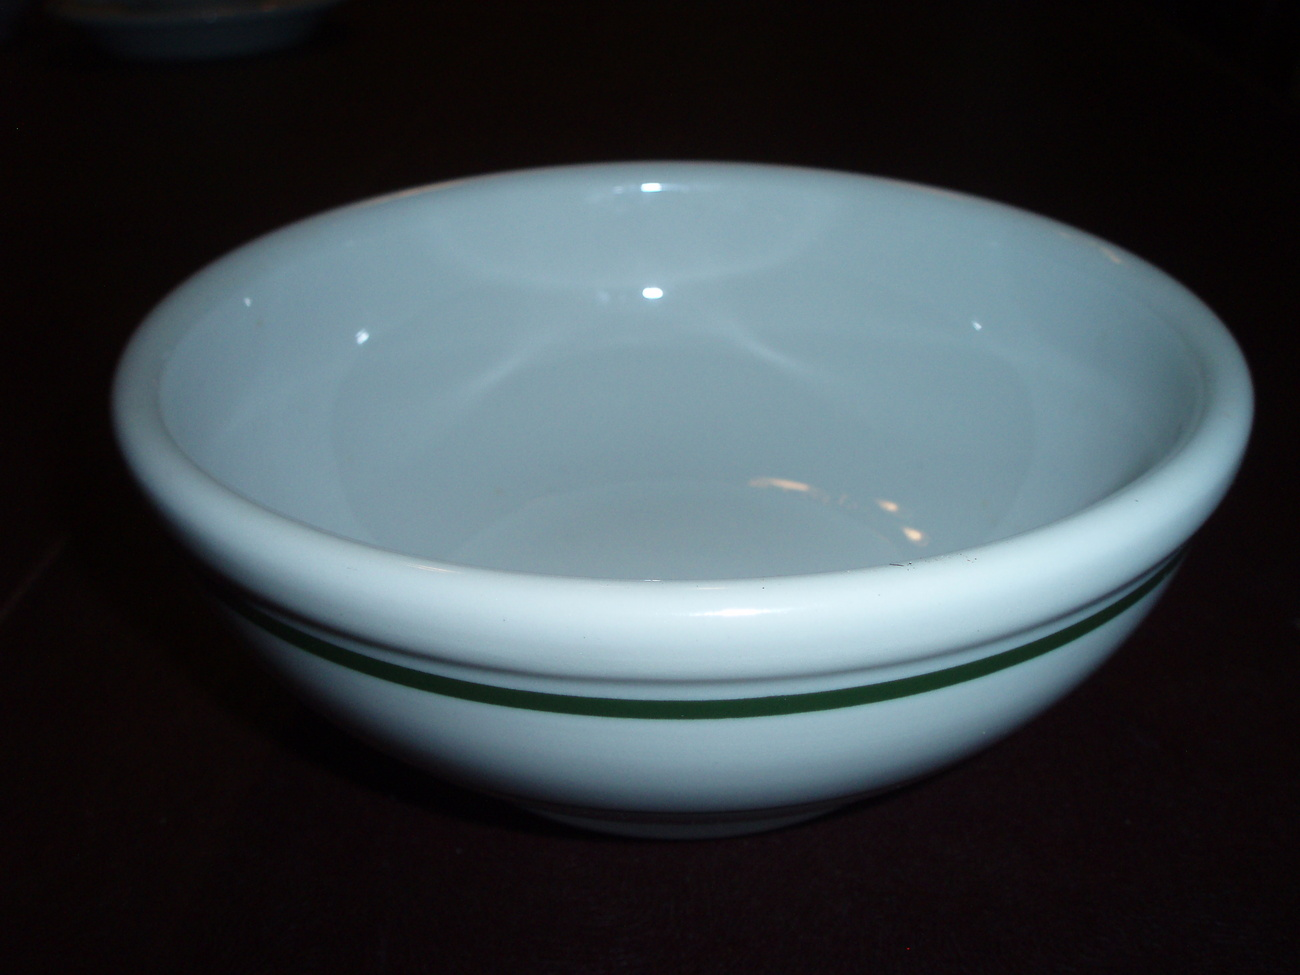 Image 0 of Shenango China cereal bowl Lawrence V16 restaurant ware